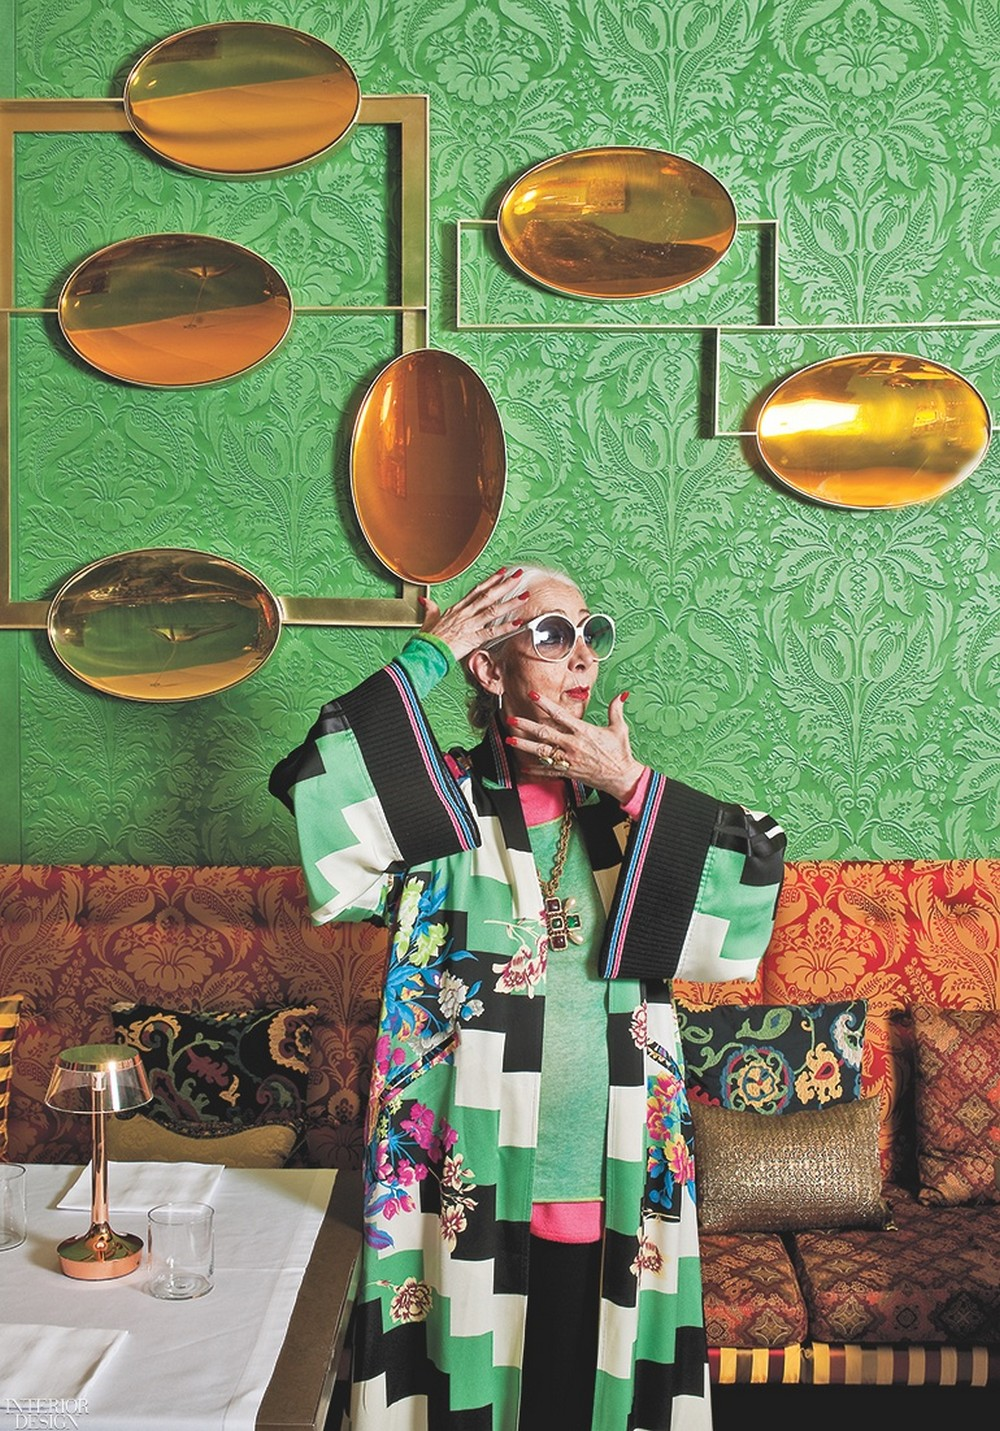 See Rossana Orlandi's Exclusive Interview By CovetED Magazine rossana orlandi See Rossana Orlandi's Exclusive Interview By CovetED Magazine See Rossana Orlandis Exclusive Interview By CovetED Magazine 4